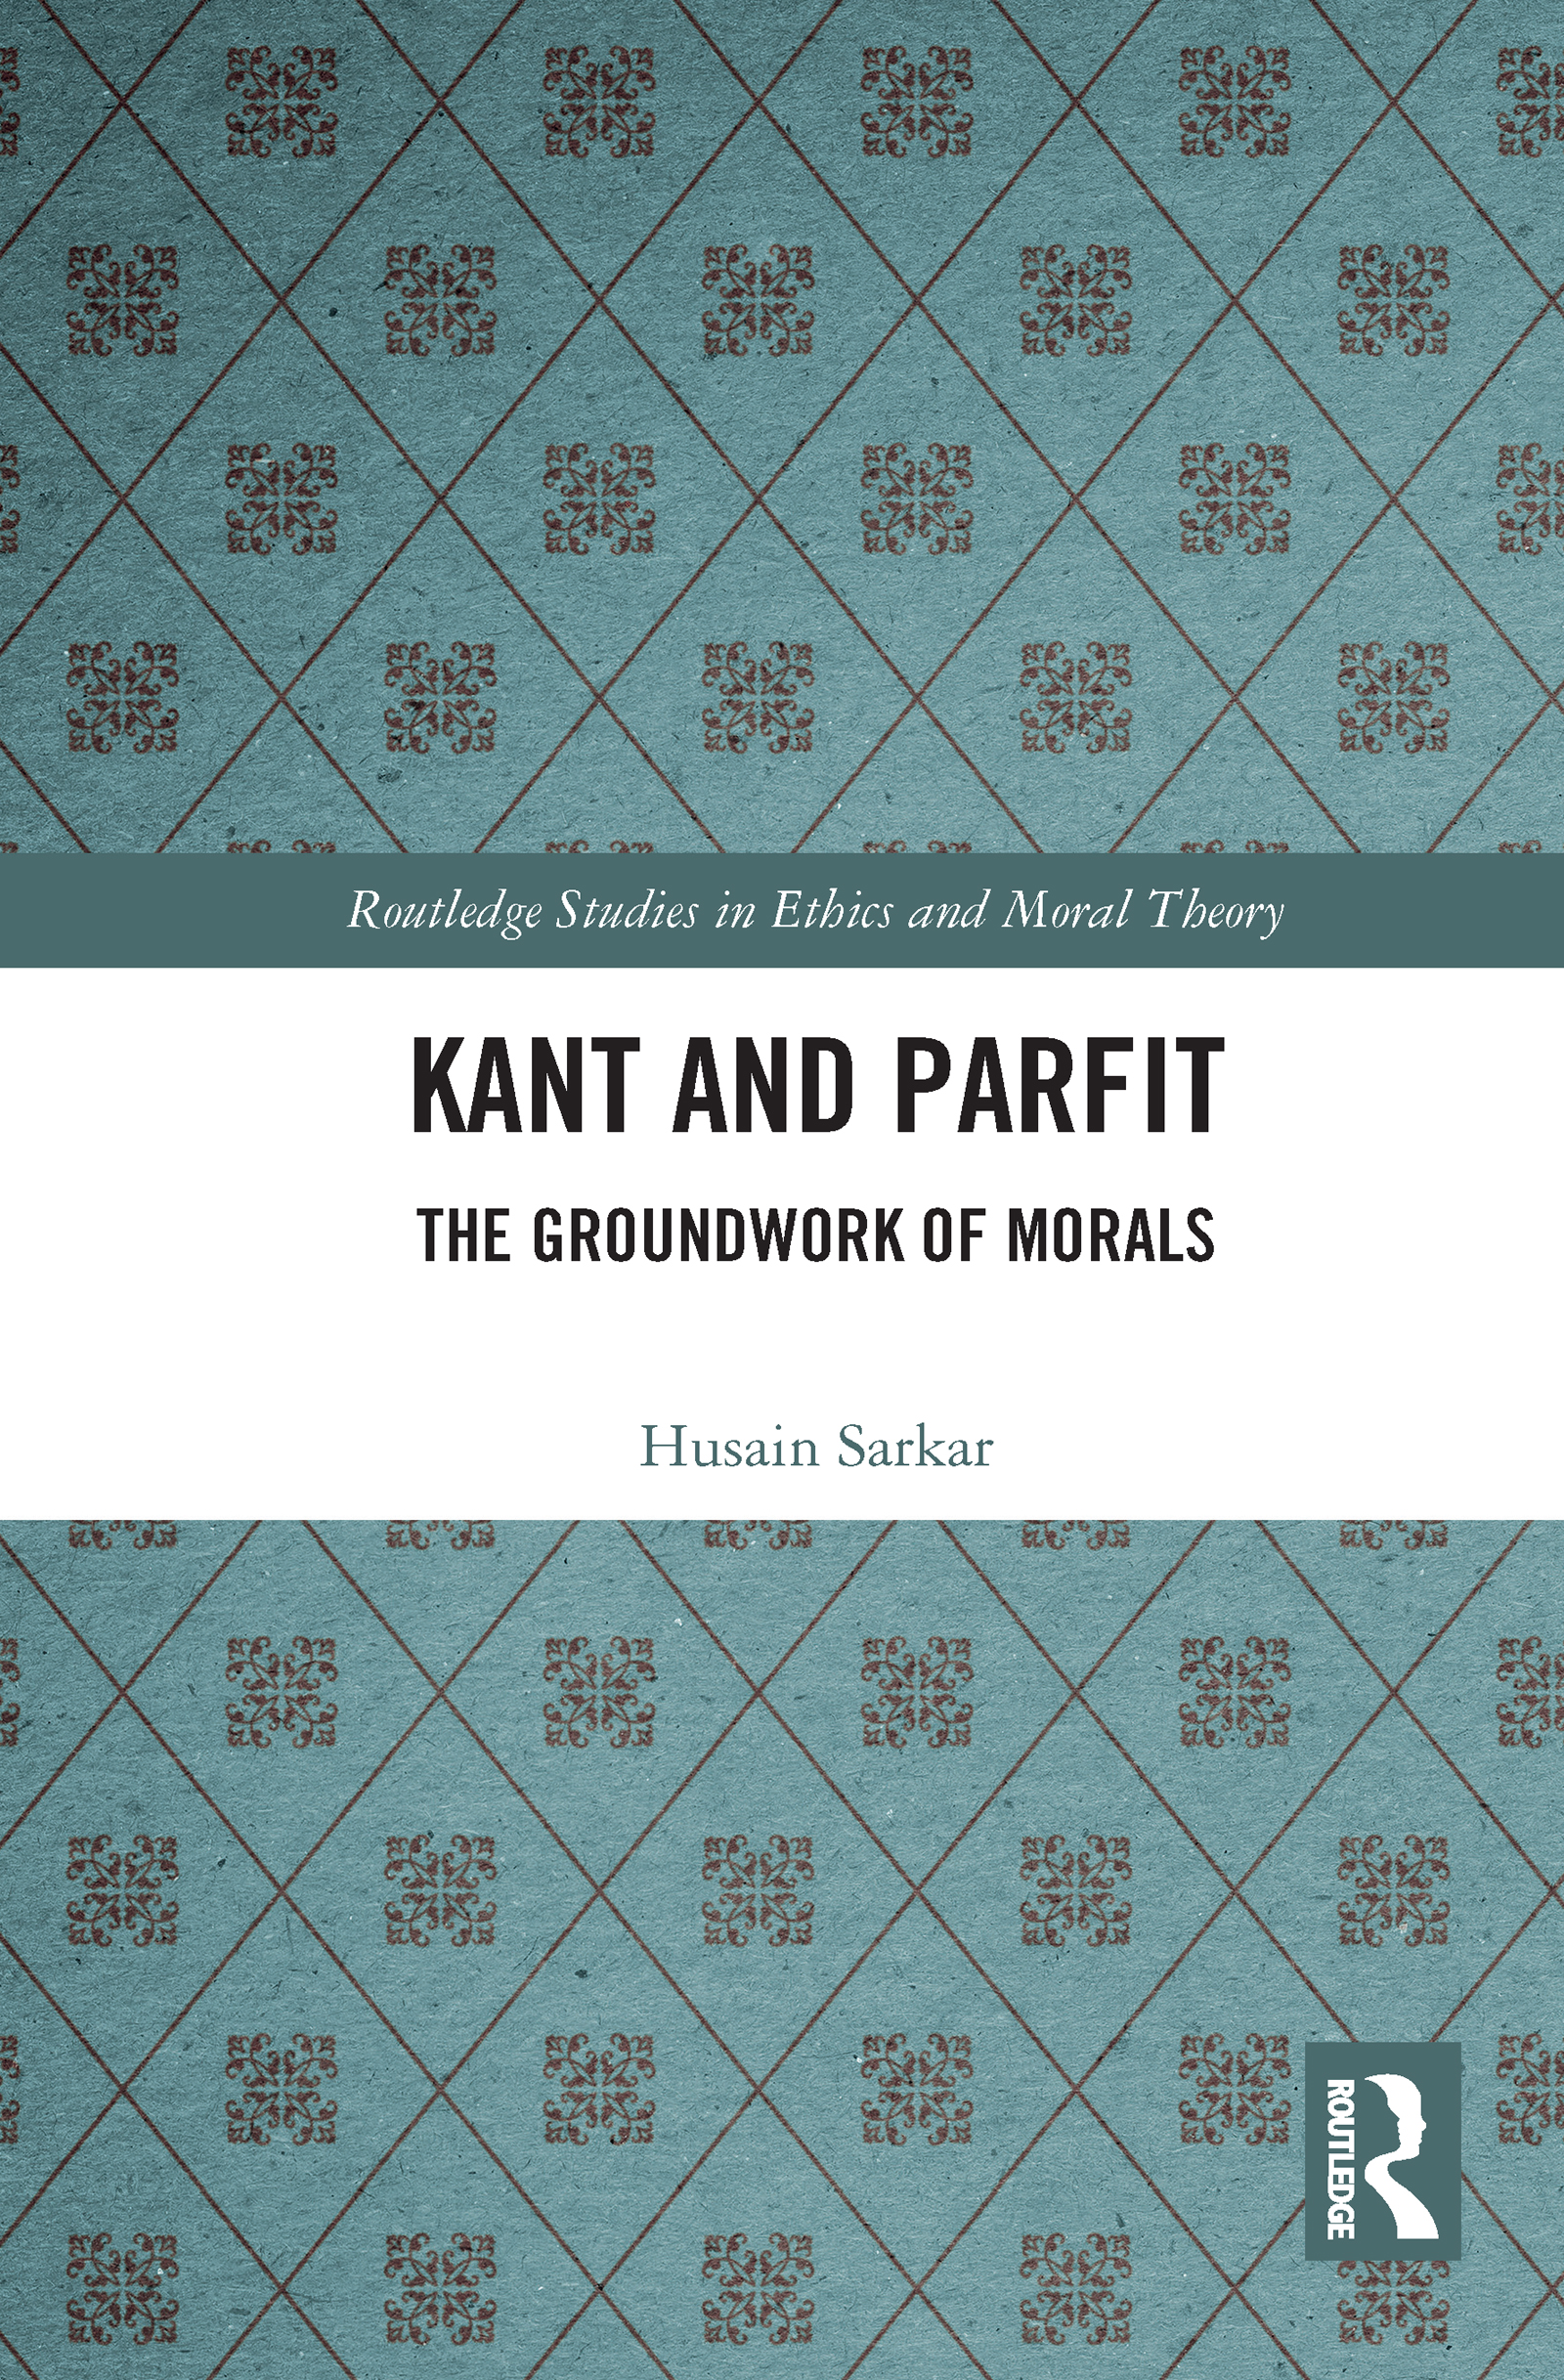 Kant and Parfit